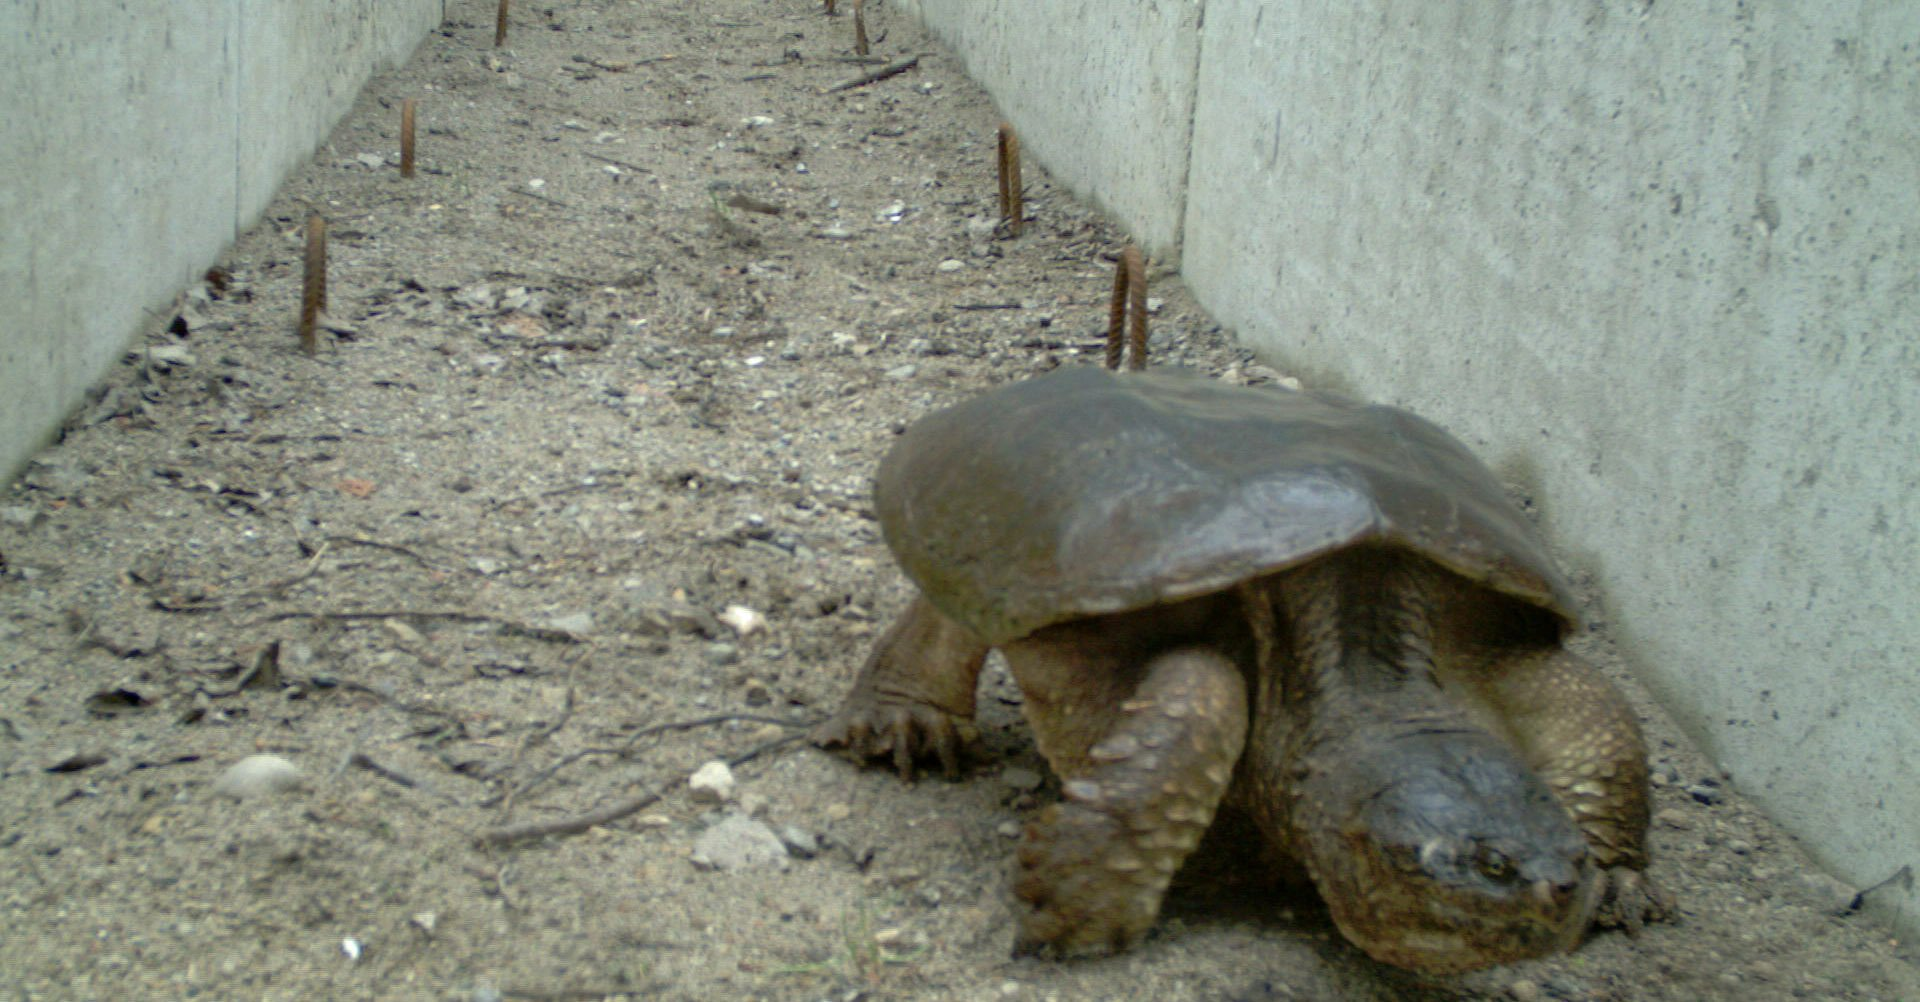 Bruce Peninsula National Park1 -Common Snapping Turtle